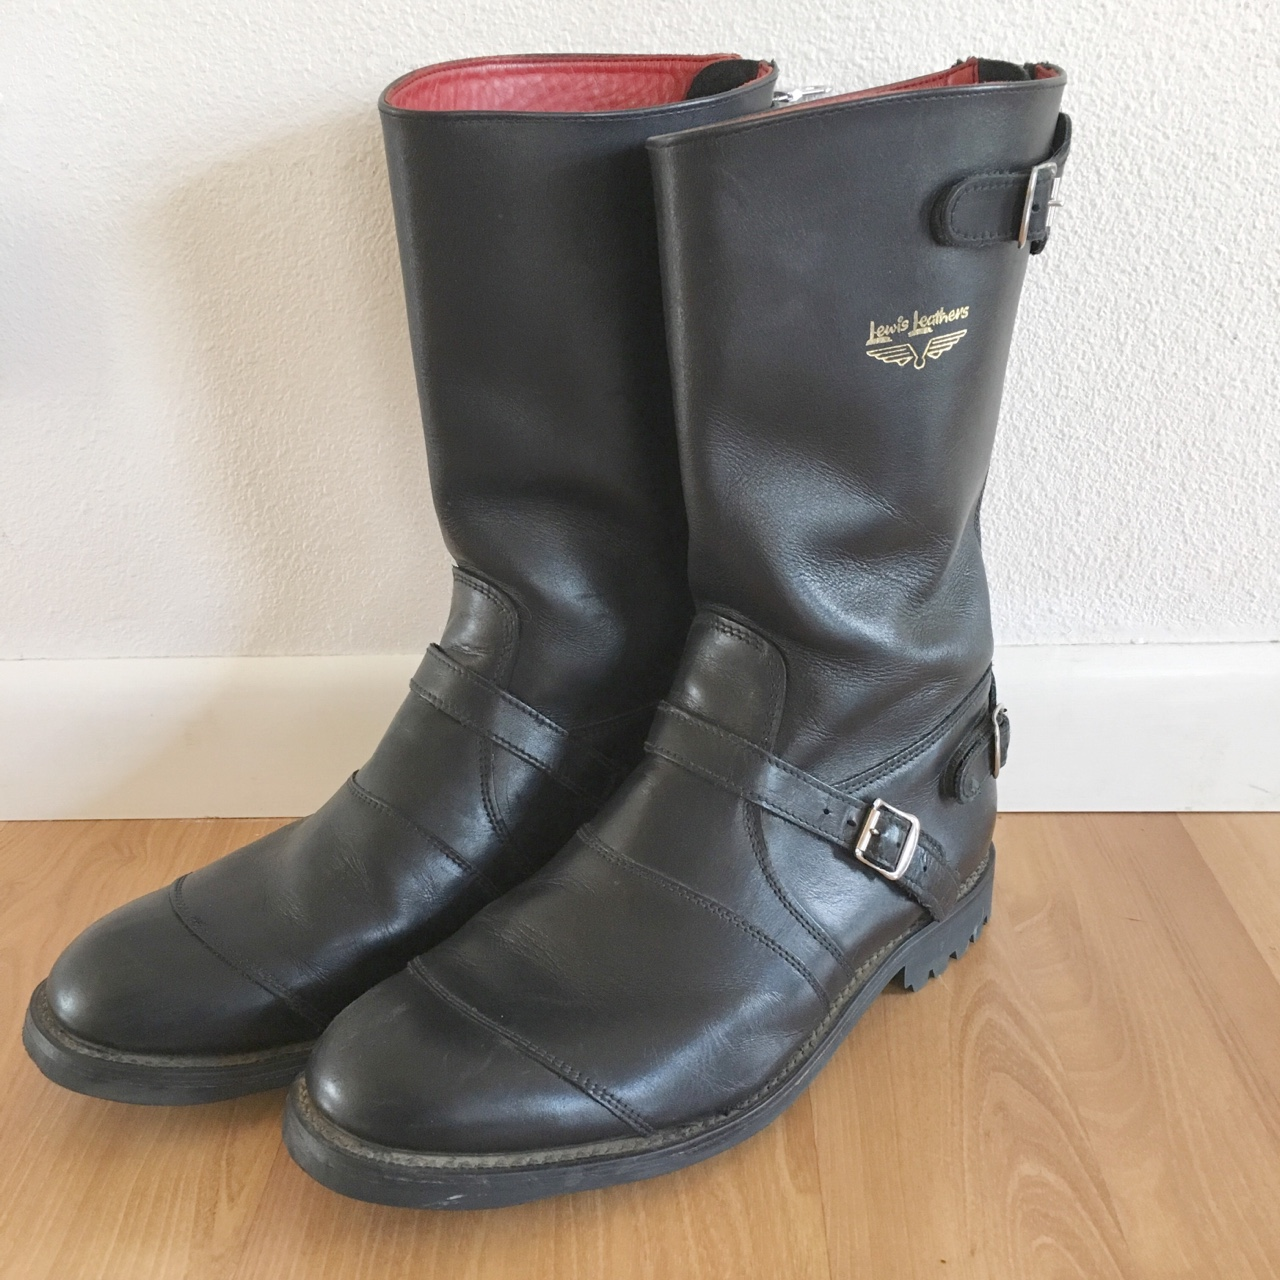 westway boots, OFF 72%,Free Shipping,